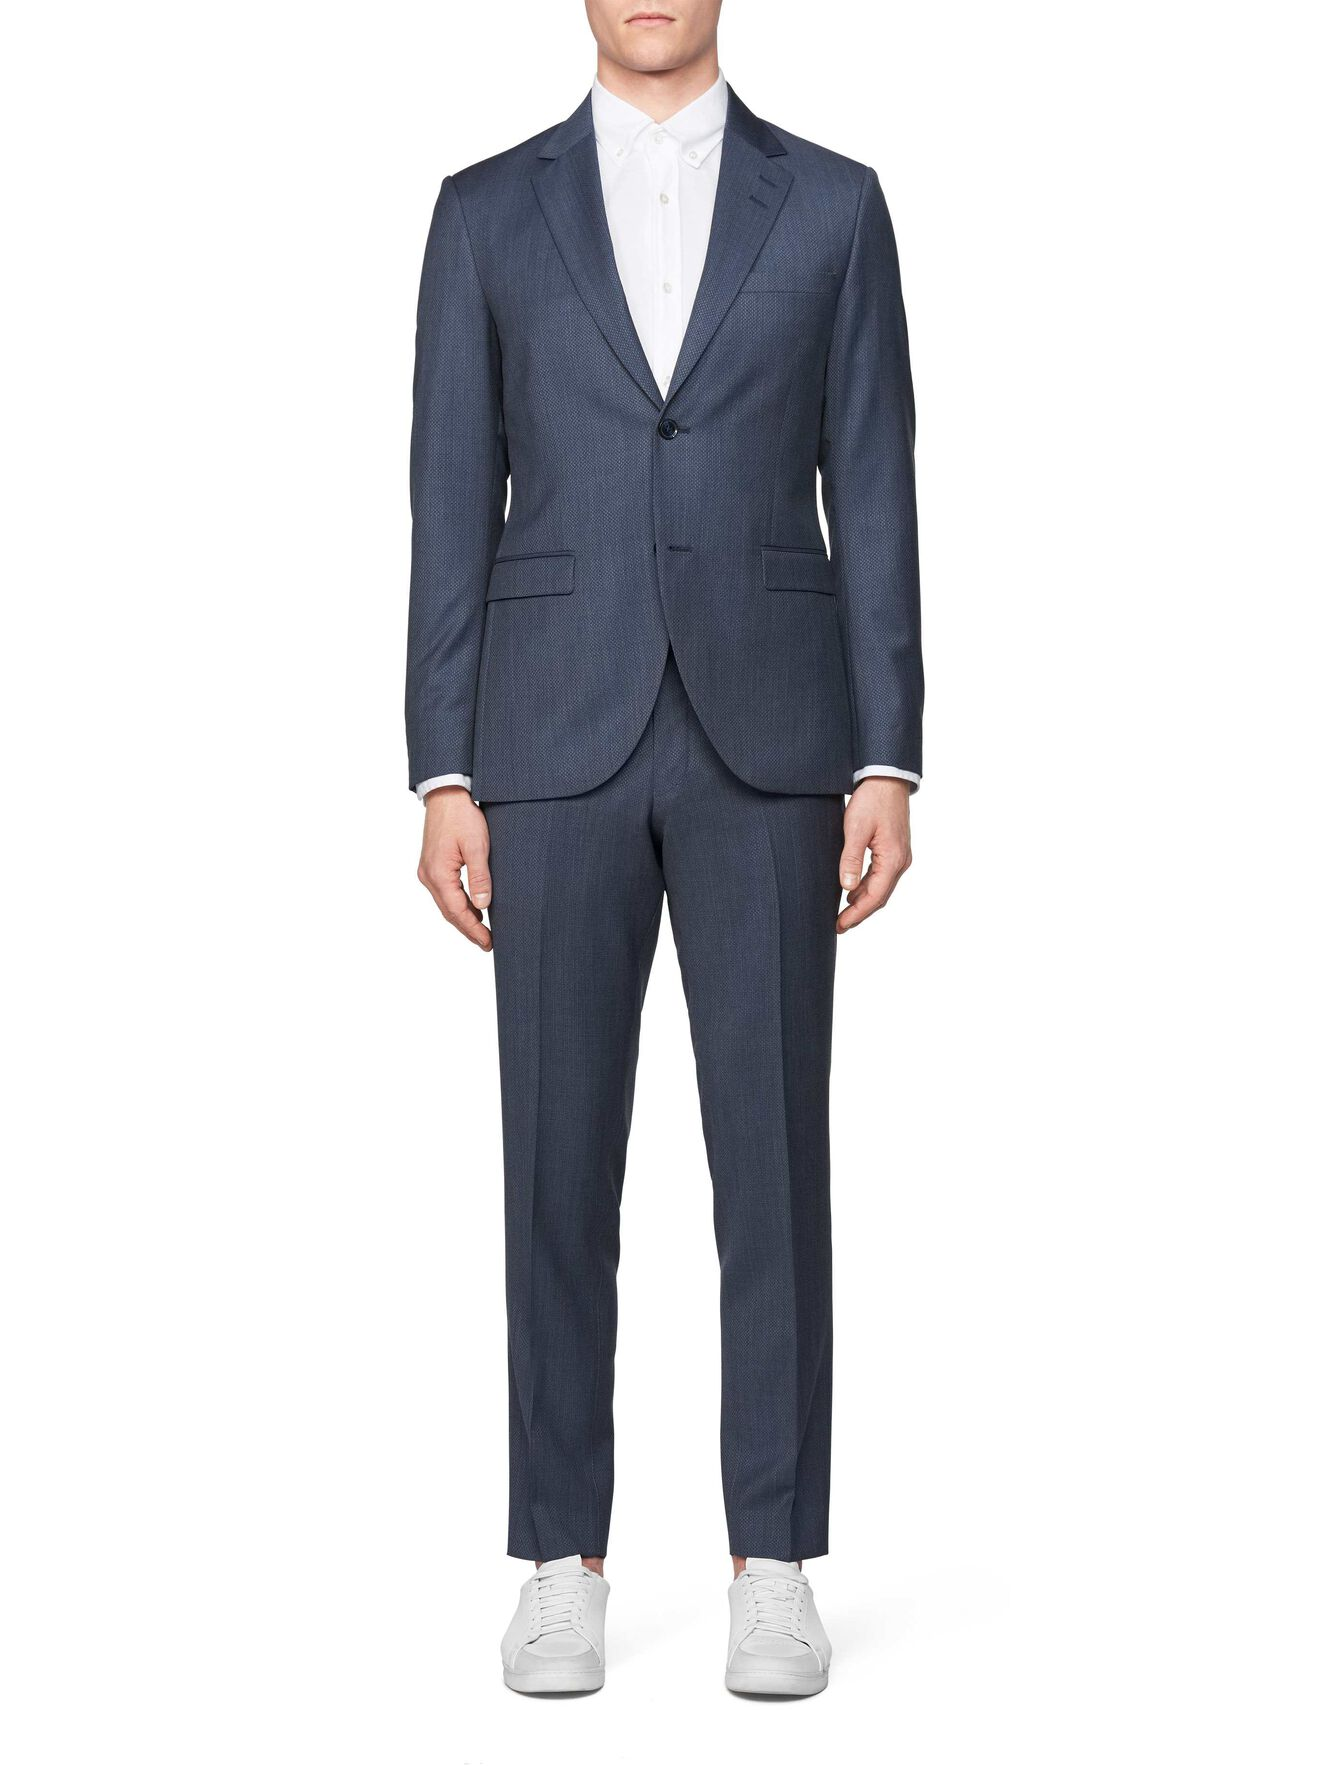 Gordon Trousers in Country Blue from Tiger of Sweden